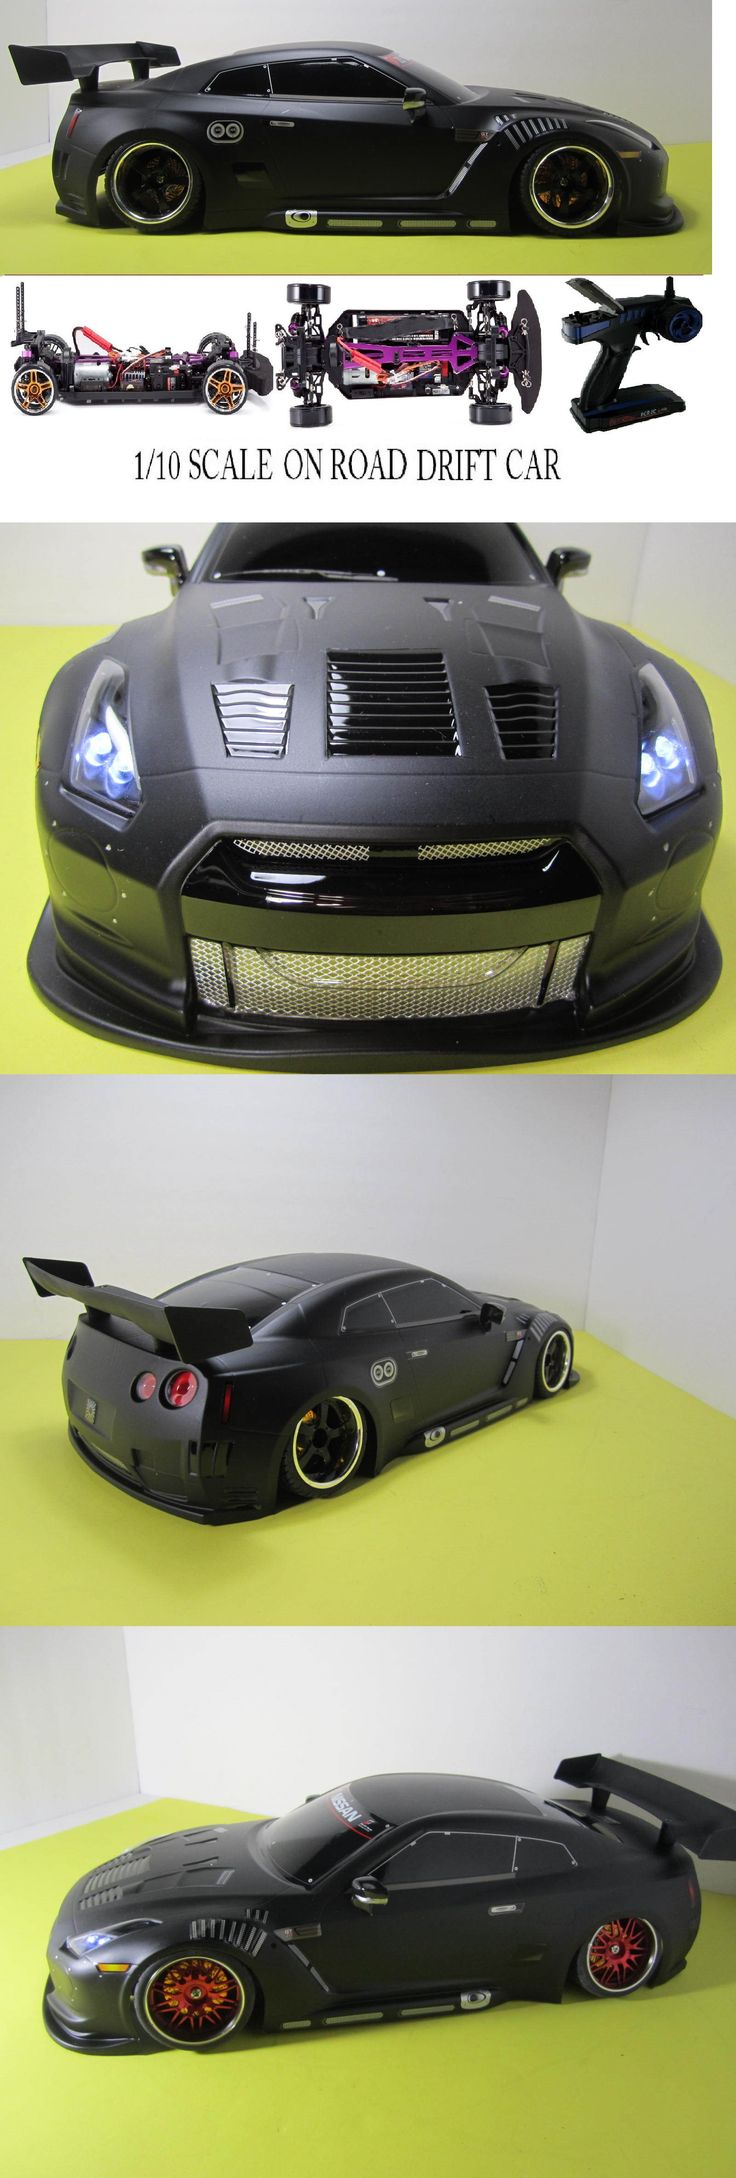 Mas De Ideas Increibles Sobre Rc Drift En Pinterest Jdm